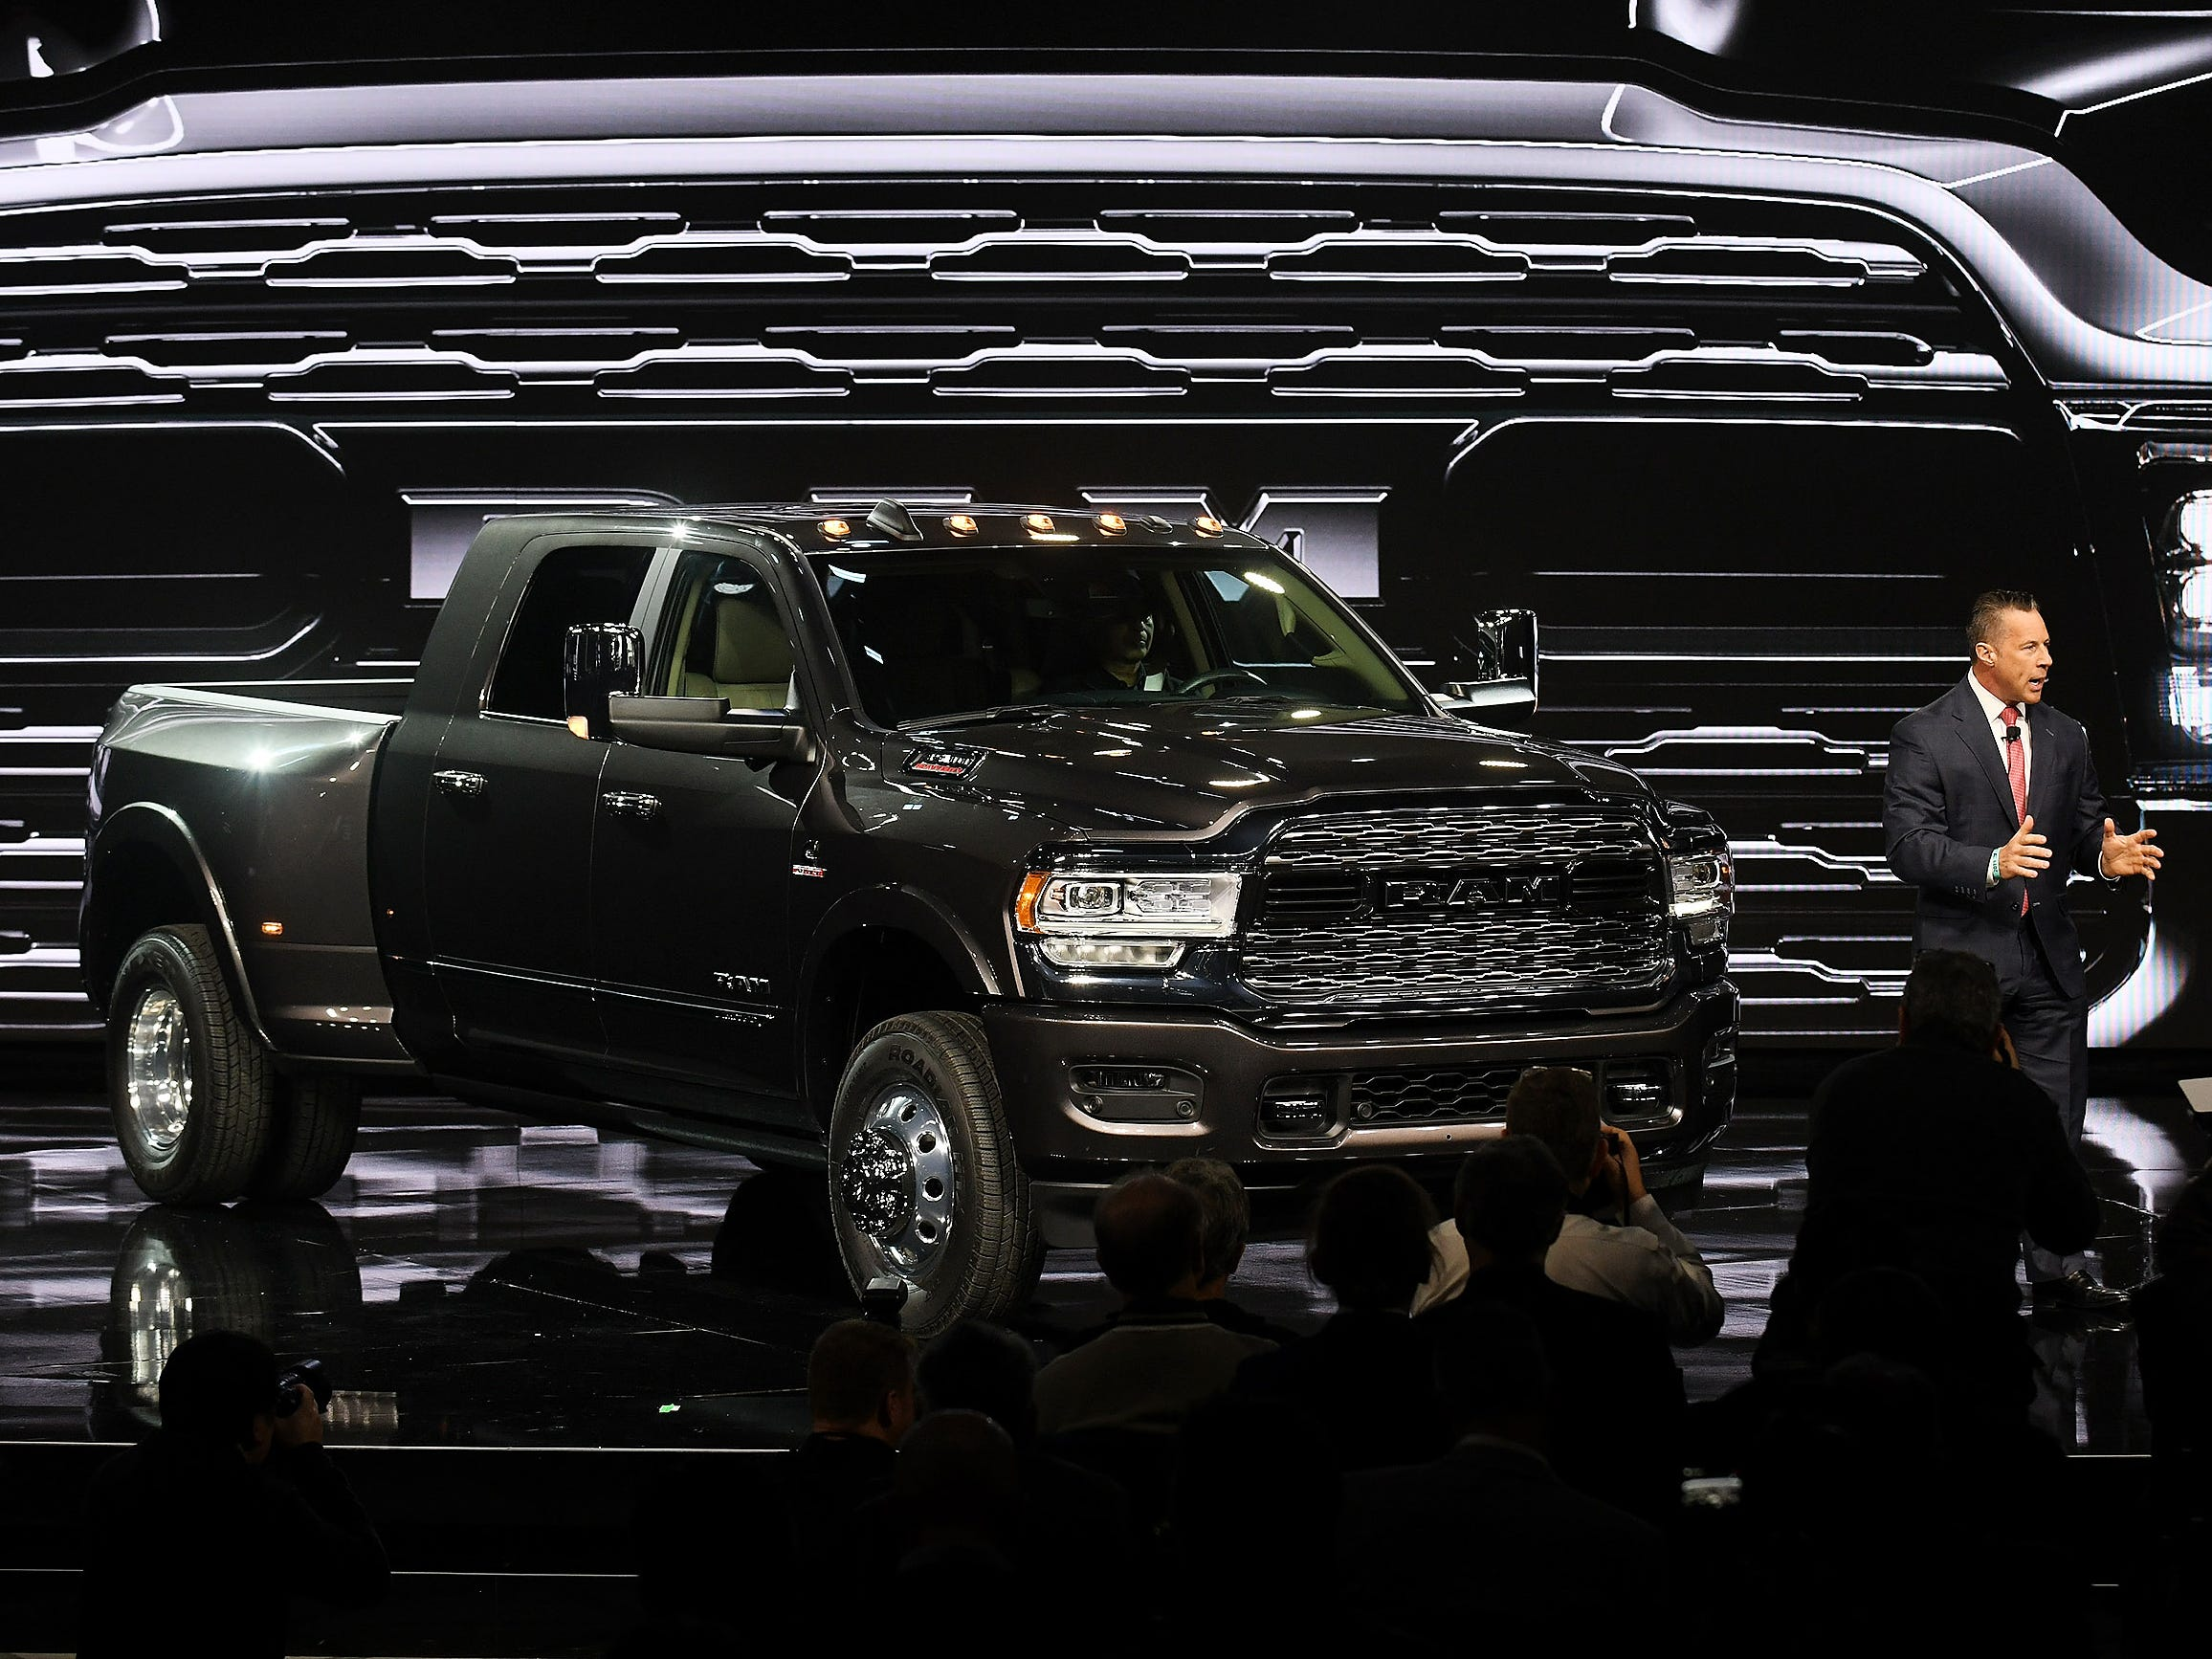 Reid Bigland, head of the Ram brand, talks about the 2019 Ram Heavy Duty 3500. The truck has the highest capability numbers for diesel- and gas-powered pickups, with 3,500-lbs. towing power and a and 7,680-lb. payload.